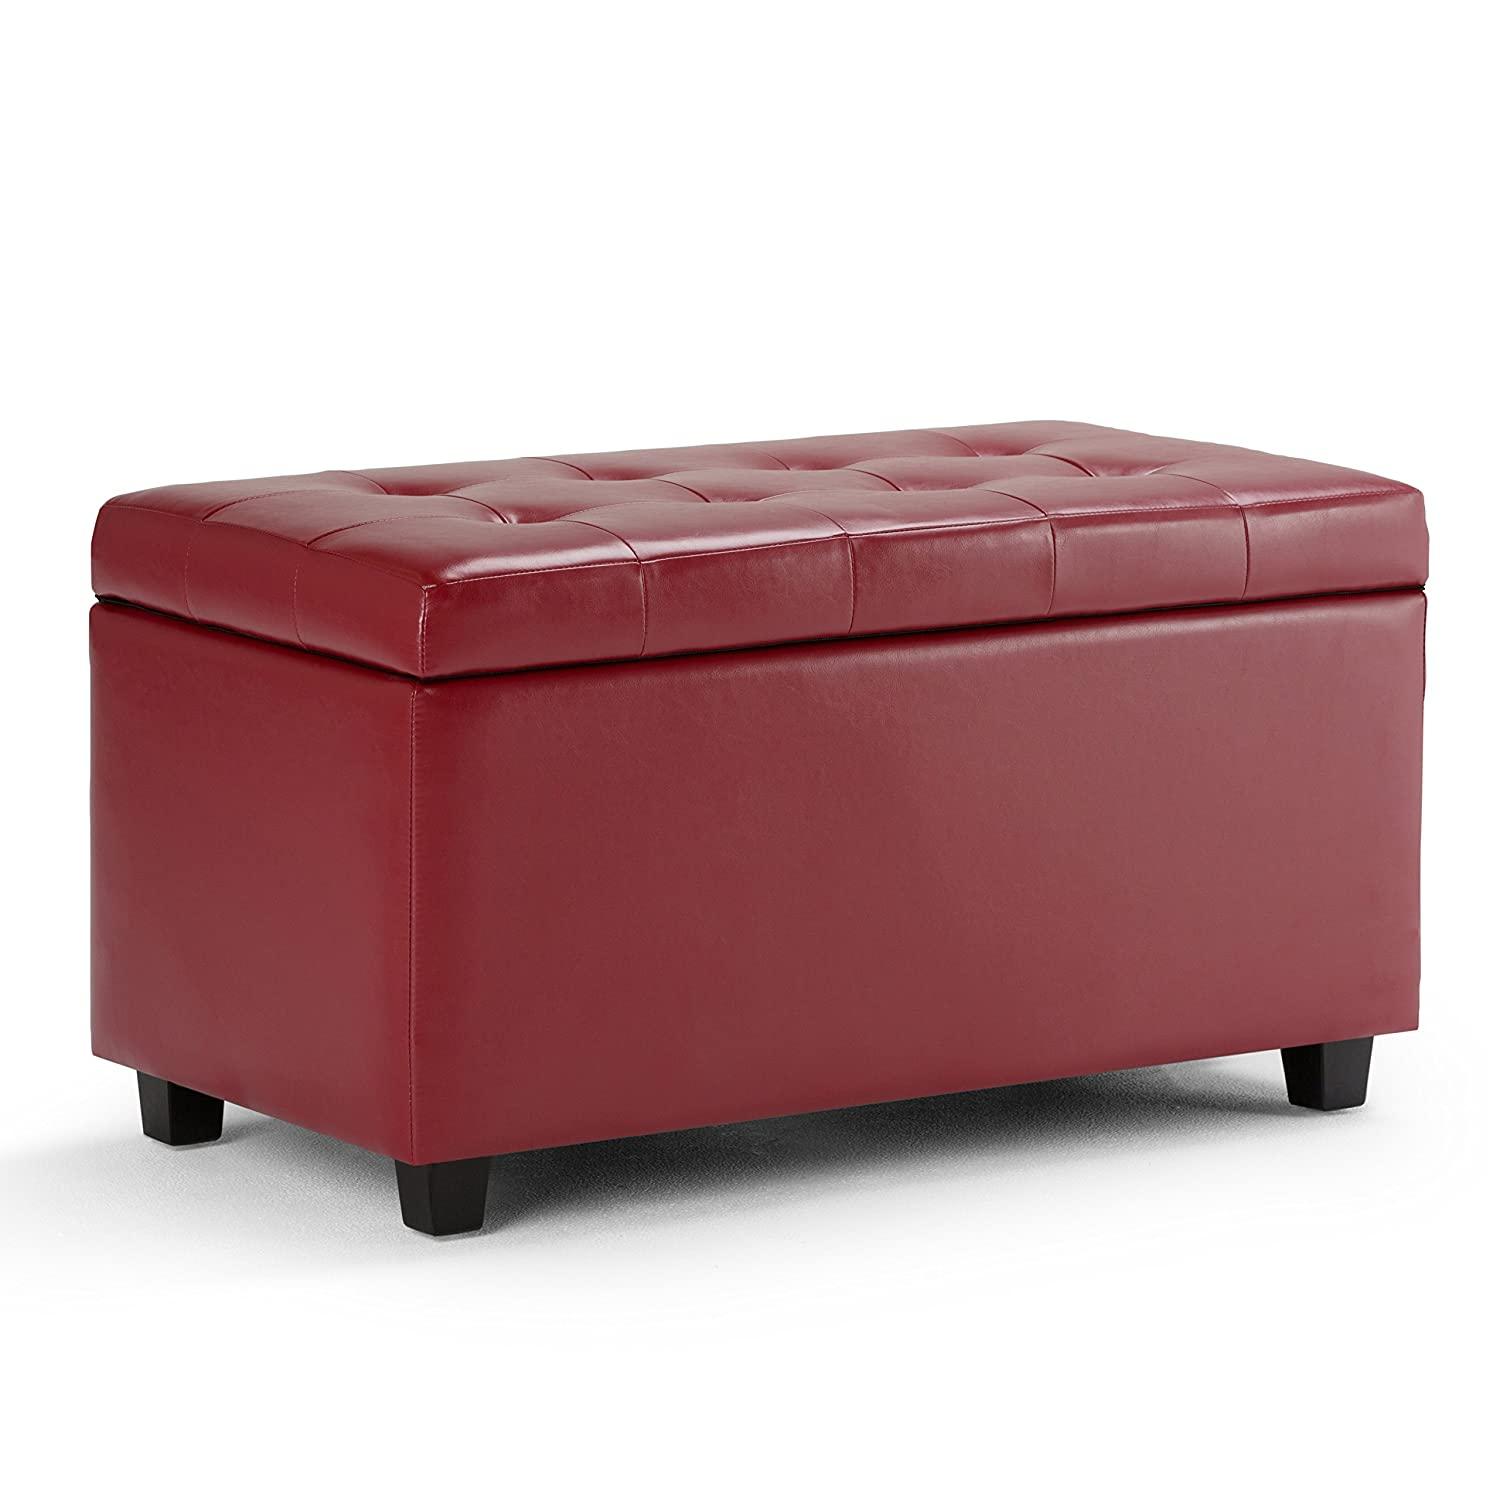 Simpli Home Cosmopolitan Medium Storage Ottoman Bench, Chocolate Brown Ltd. AY-S-38-CBR